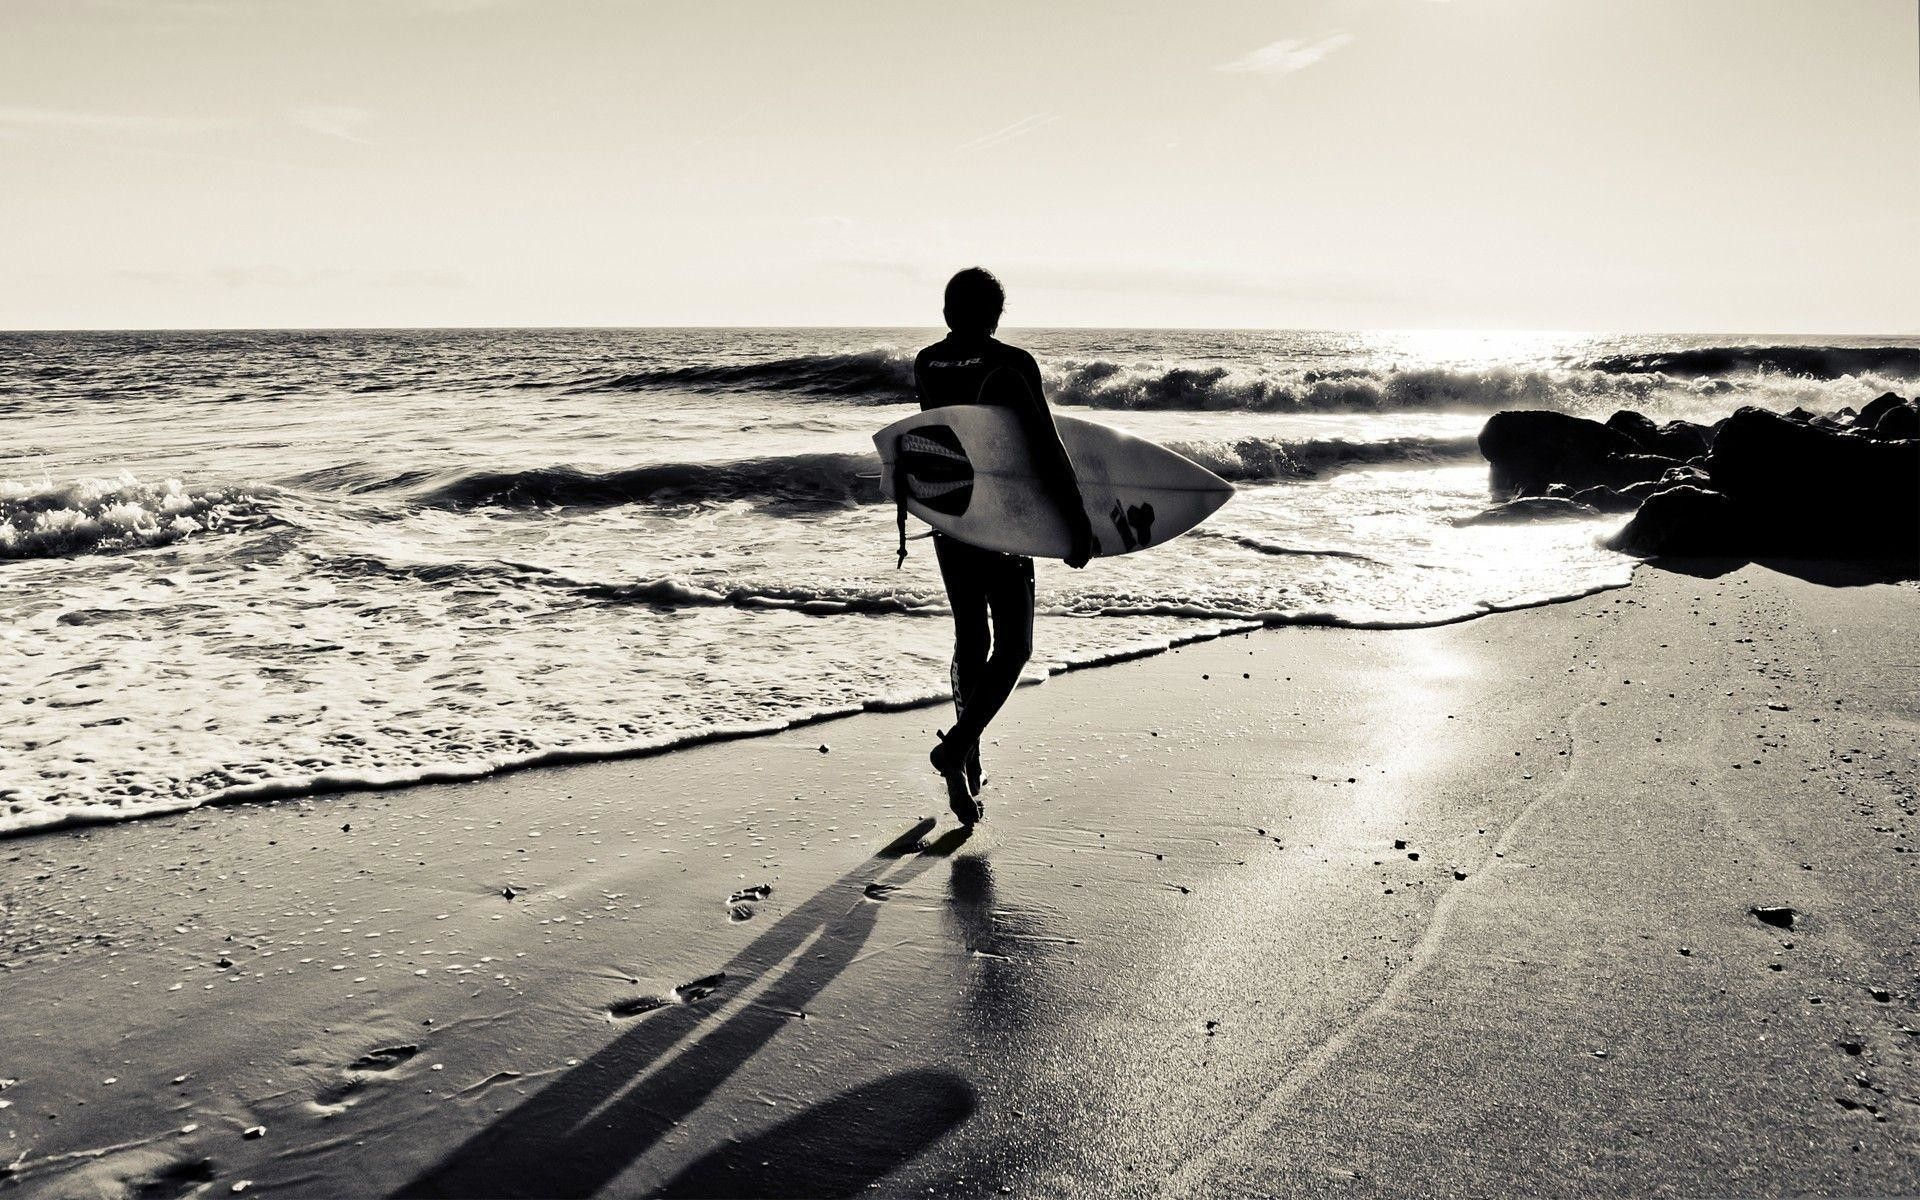 1920x1200 Wallpapers For Tumblr Backgrounds Beach Surf In